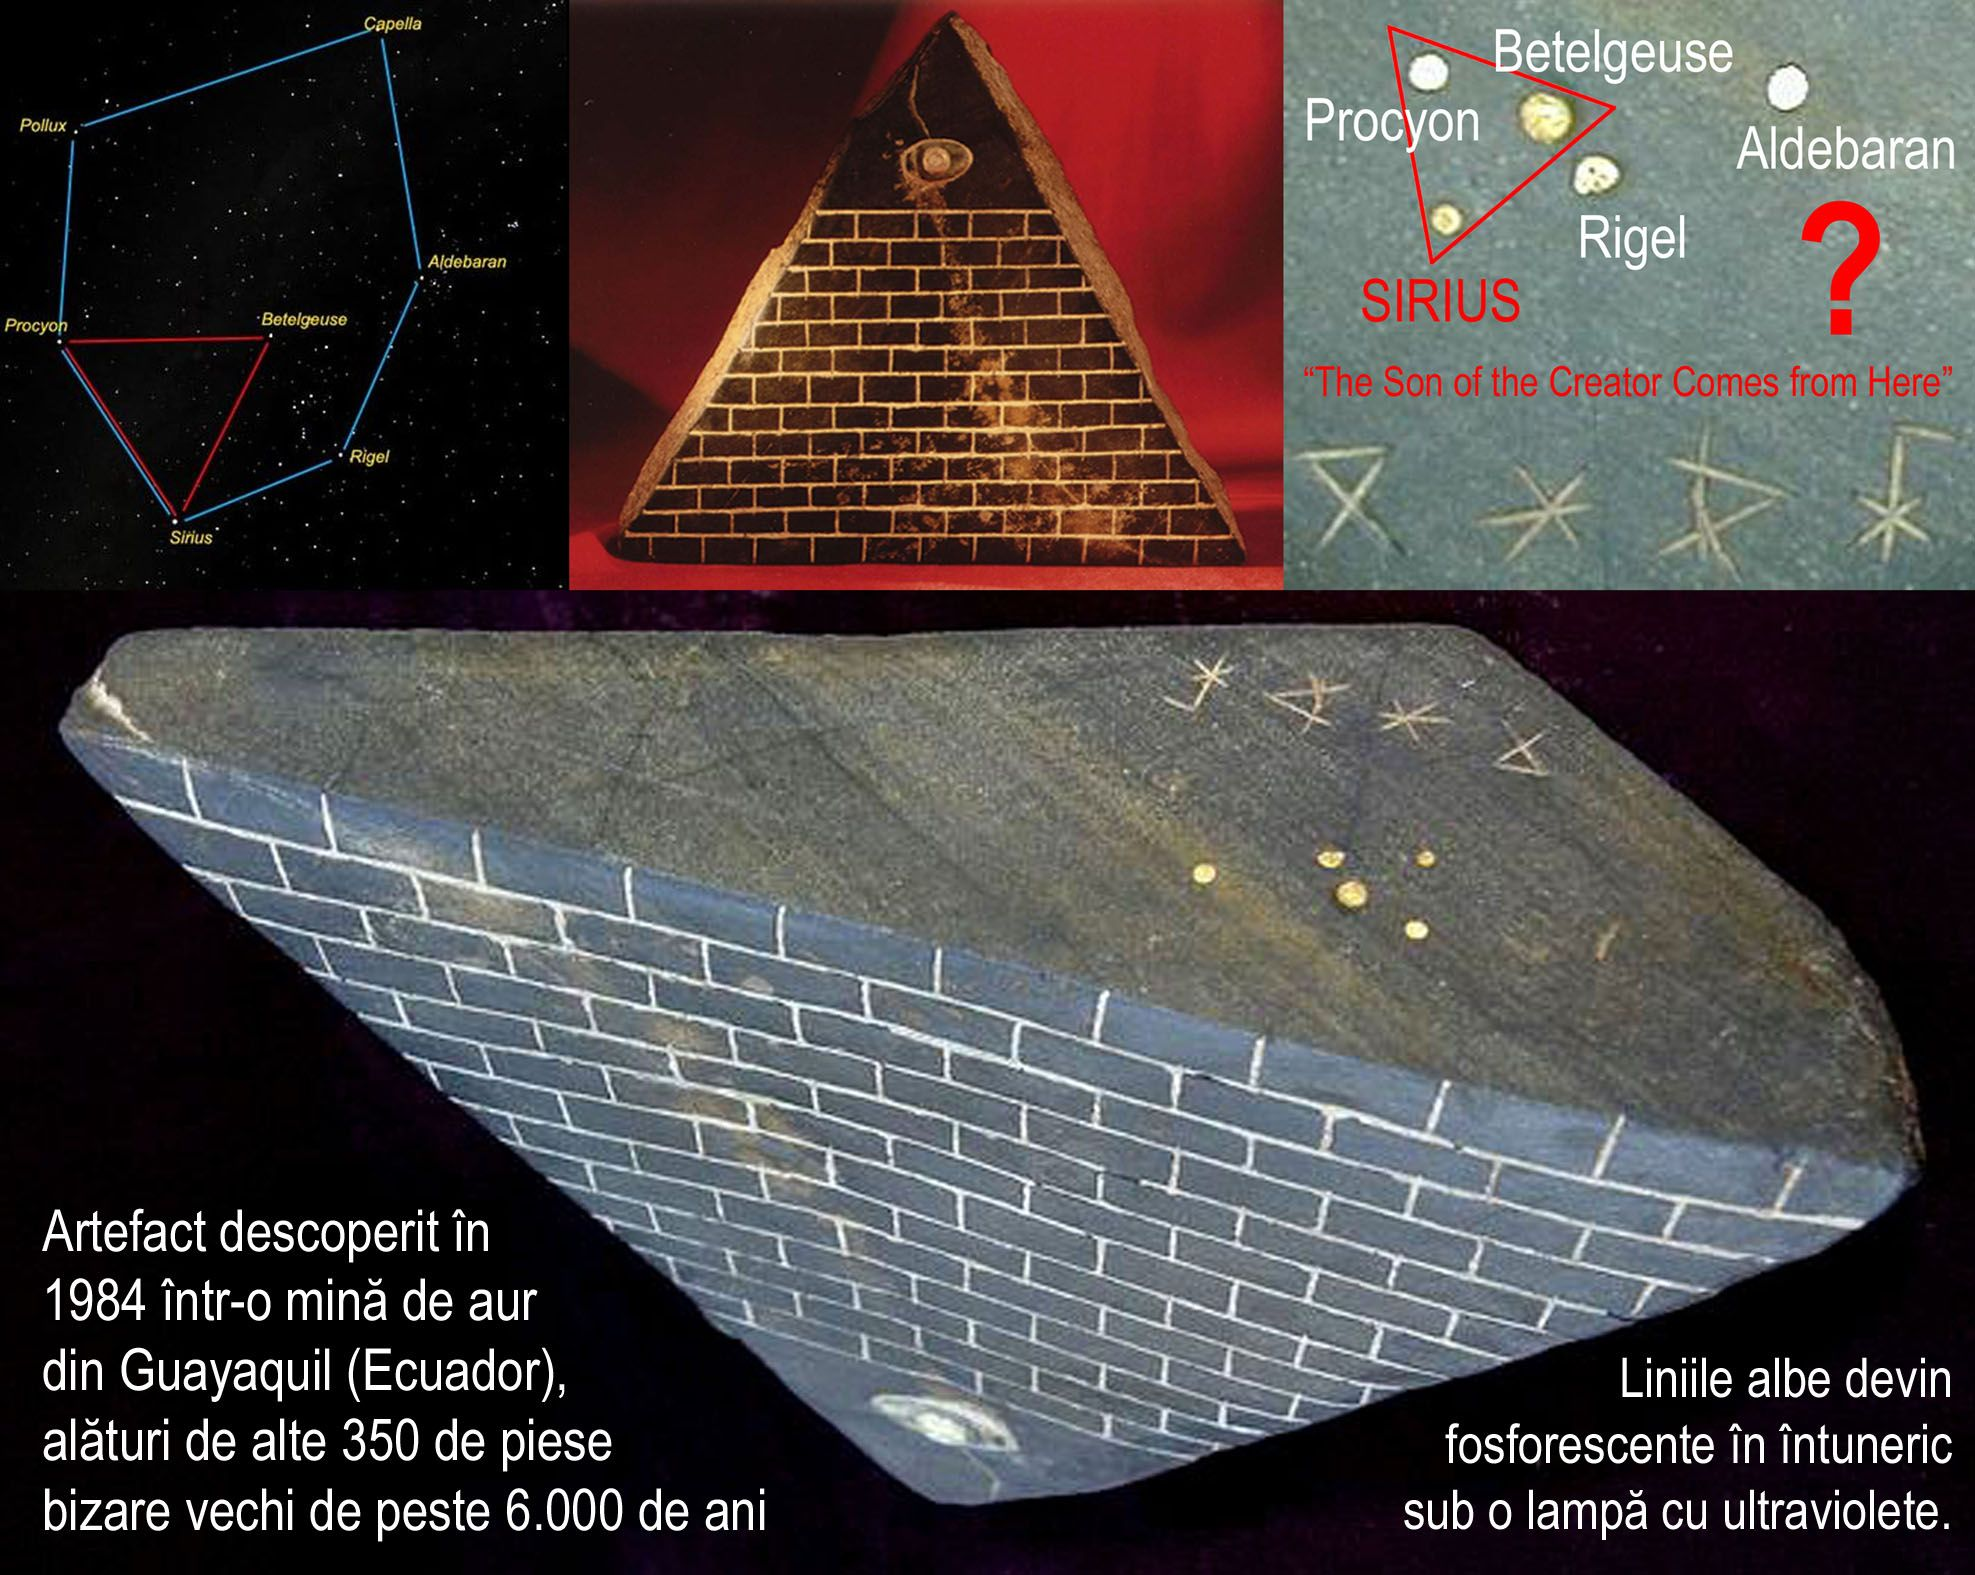 Sirius The Pyramid With The Eye The Son Of The Creator Comes